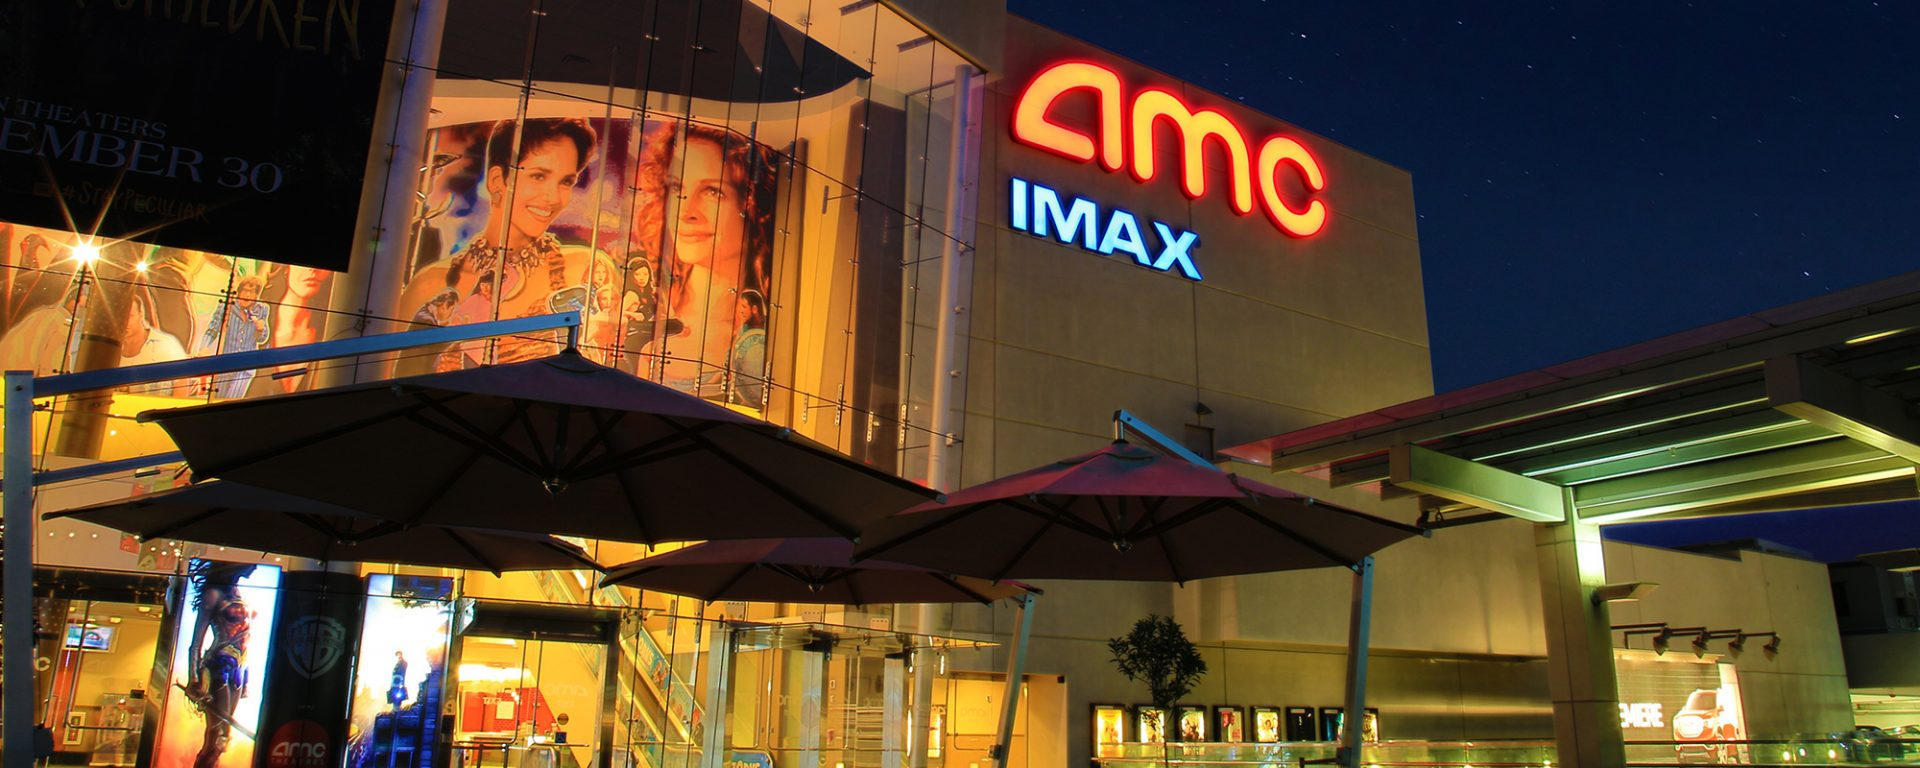 amc imax century city 15 what looks like outside